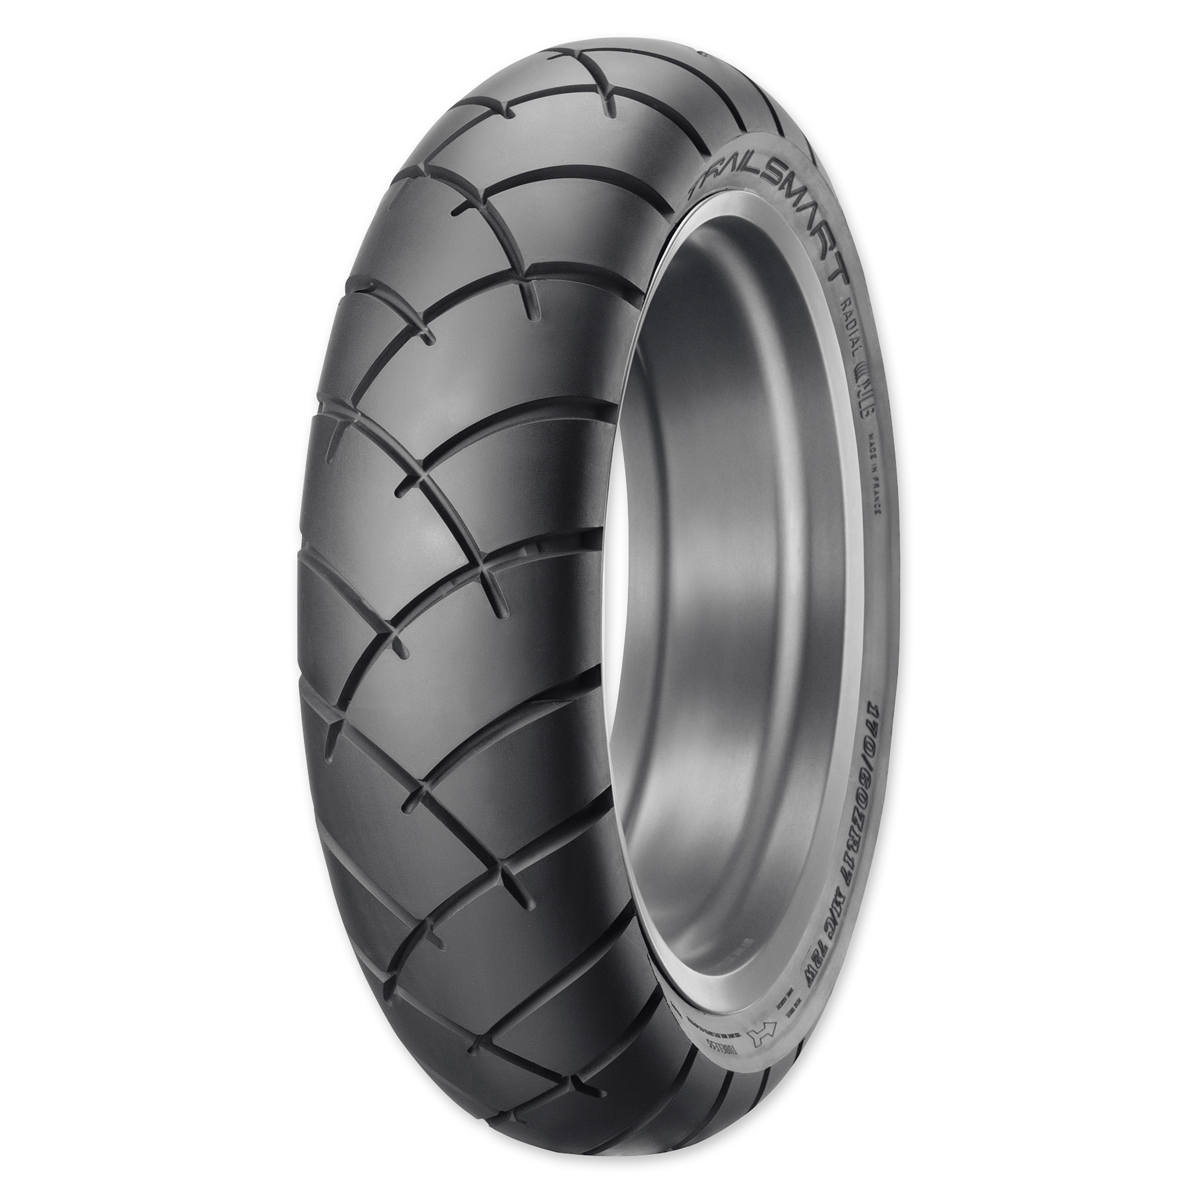 Dunlop TrailSmart 150/70R17 Rear Tire